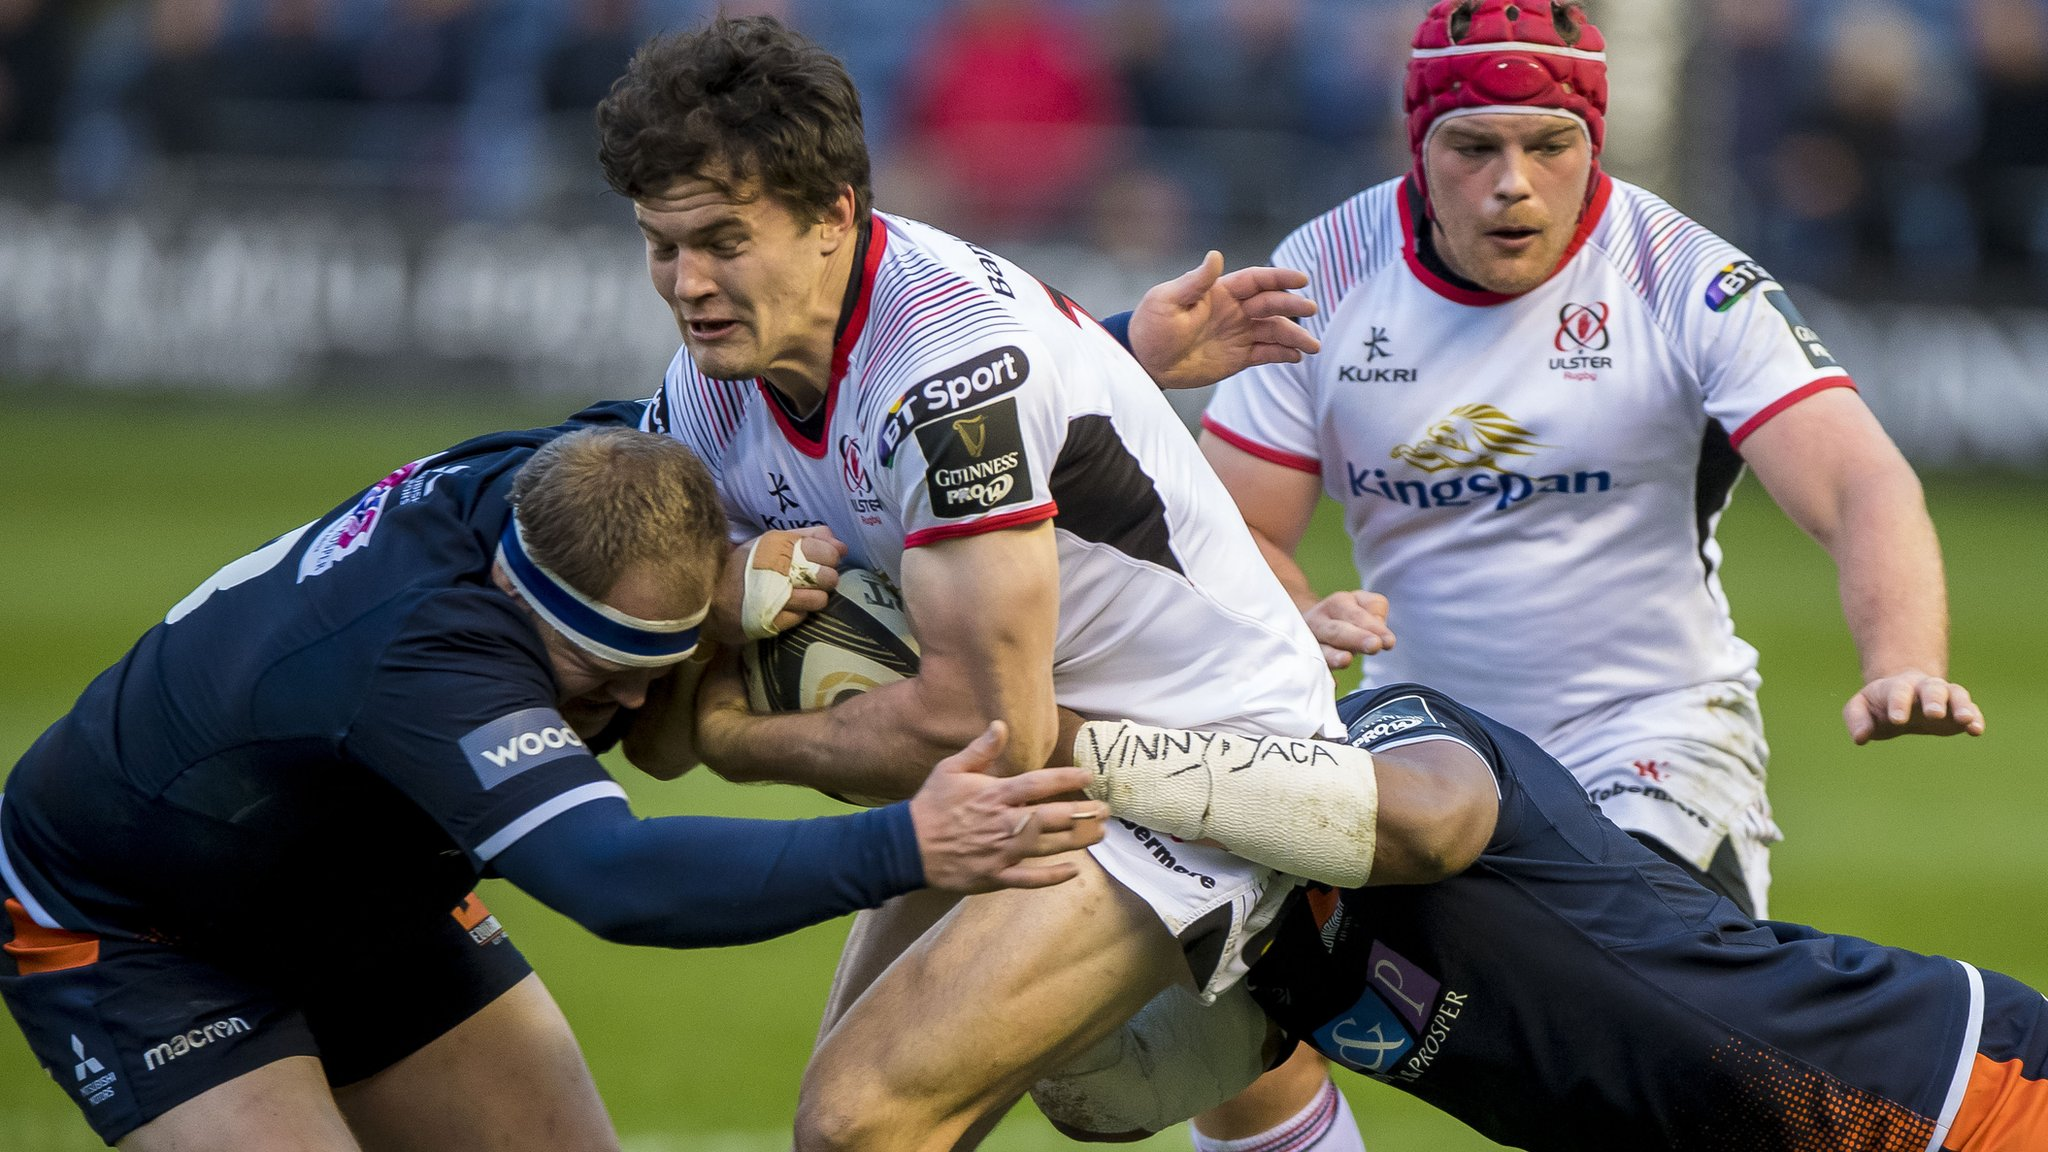 Pro14: Edinburgh 7-29 Ulster - visitors clinch Conference B play-off spot